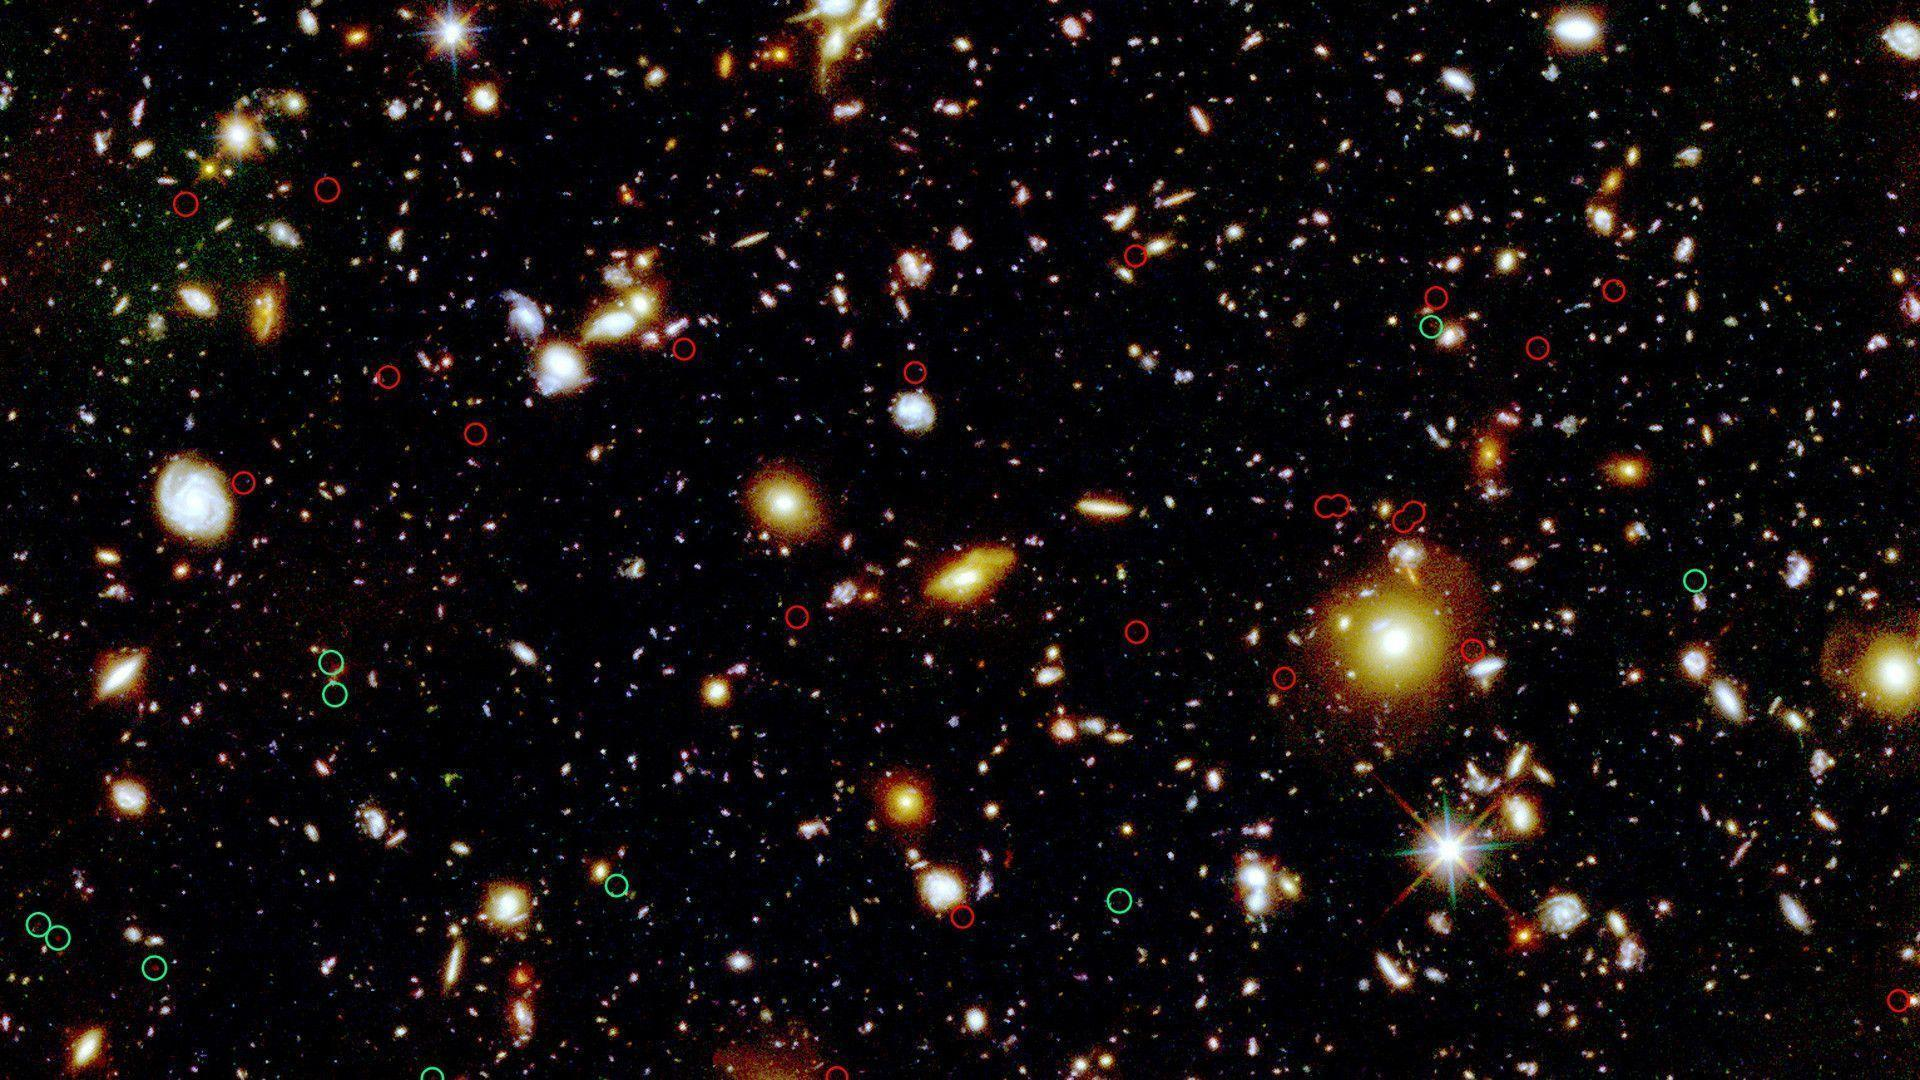 hubble deep field hd wallpaper - photo #8